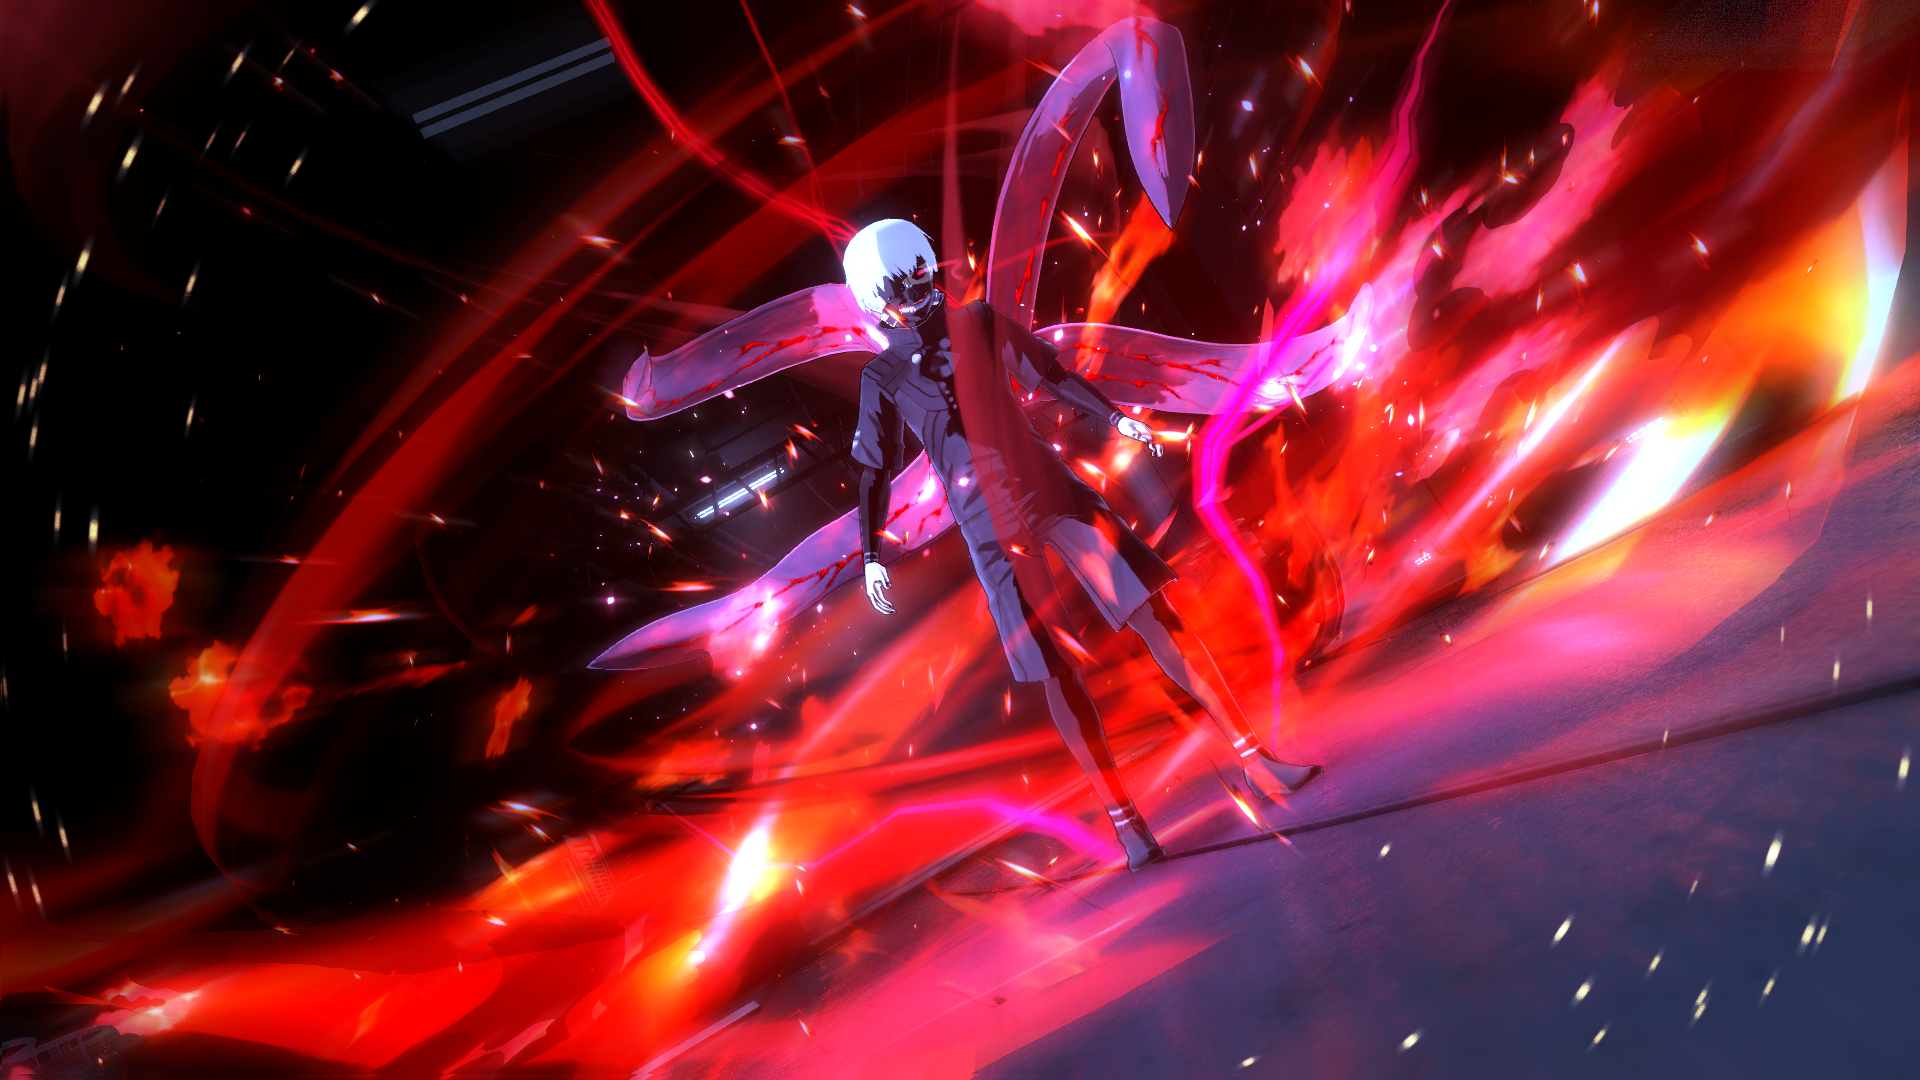 Tokyo Ghoul Re Call To Exist To Release In The West Shonengames